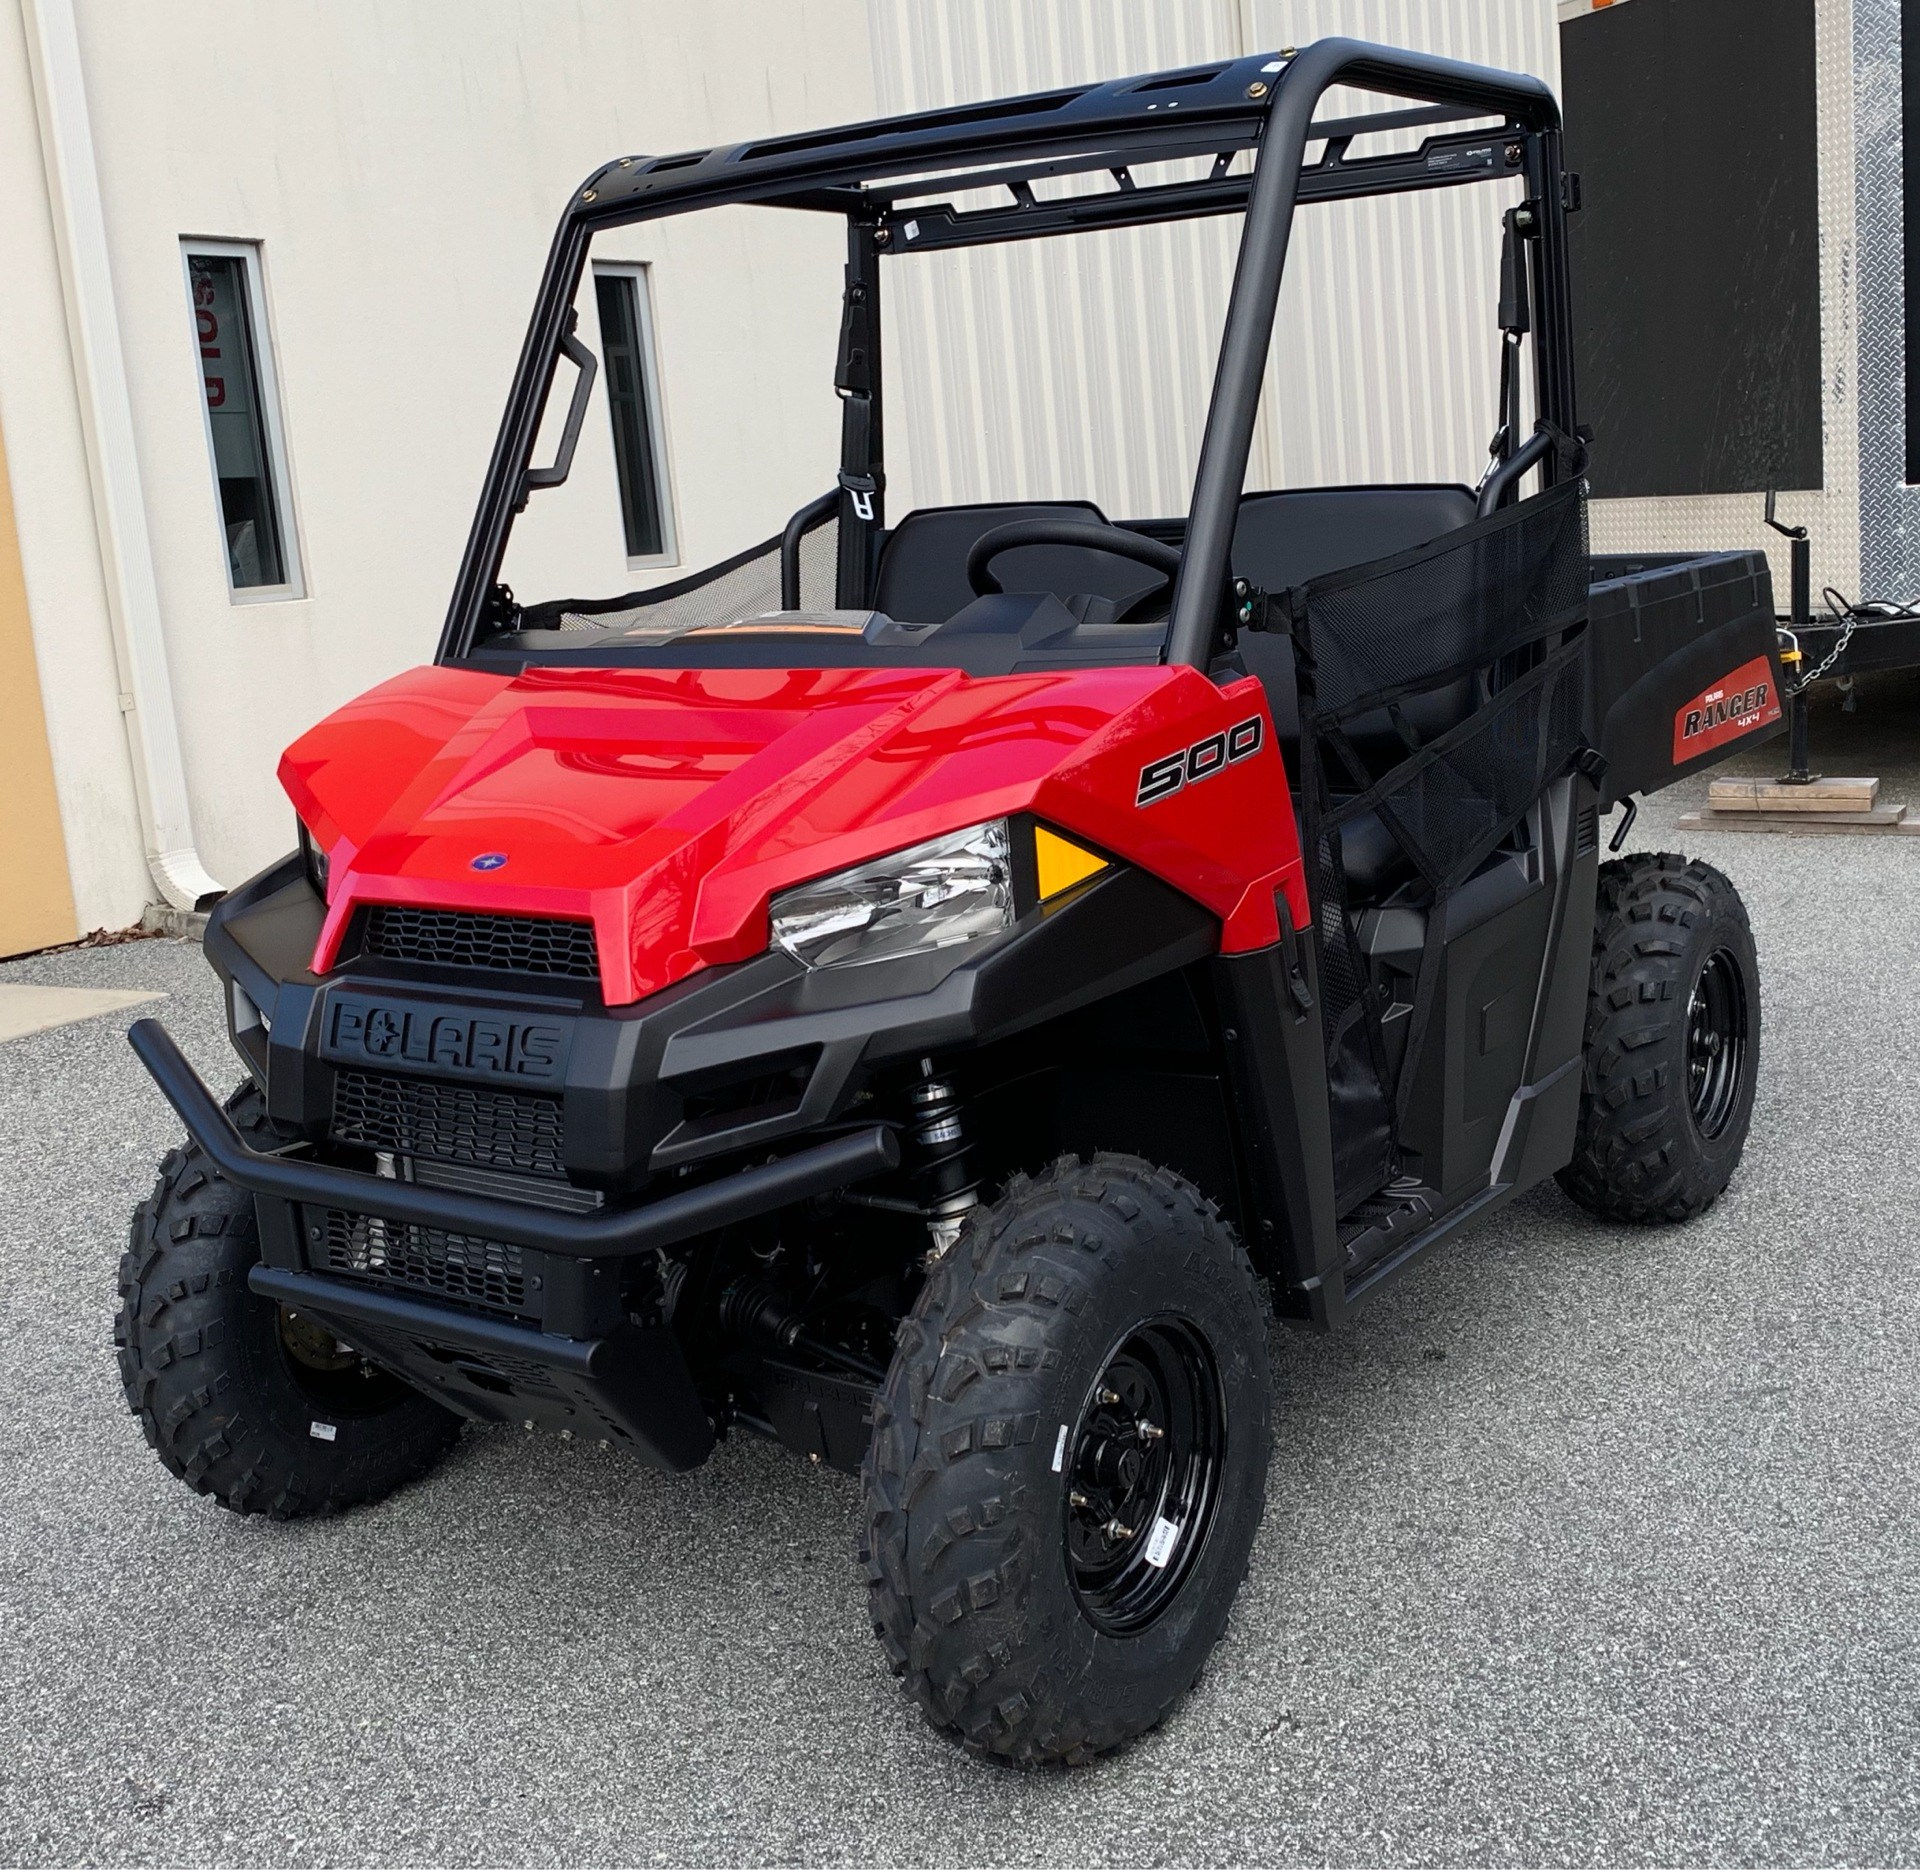 2019 Polaris Ranger 500 in High Point, North Carolina - Photo 3